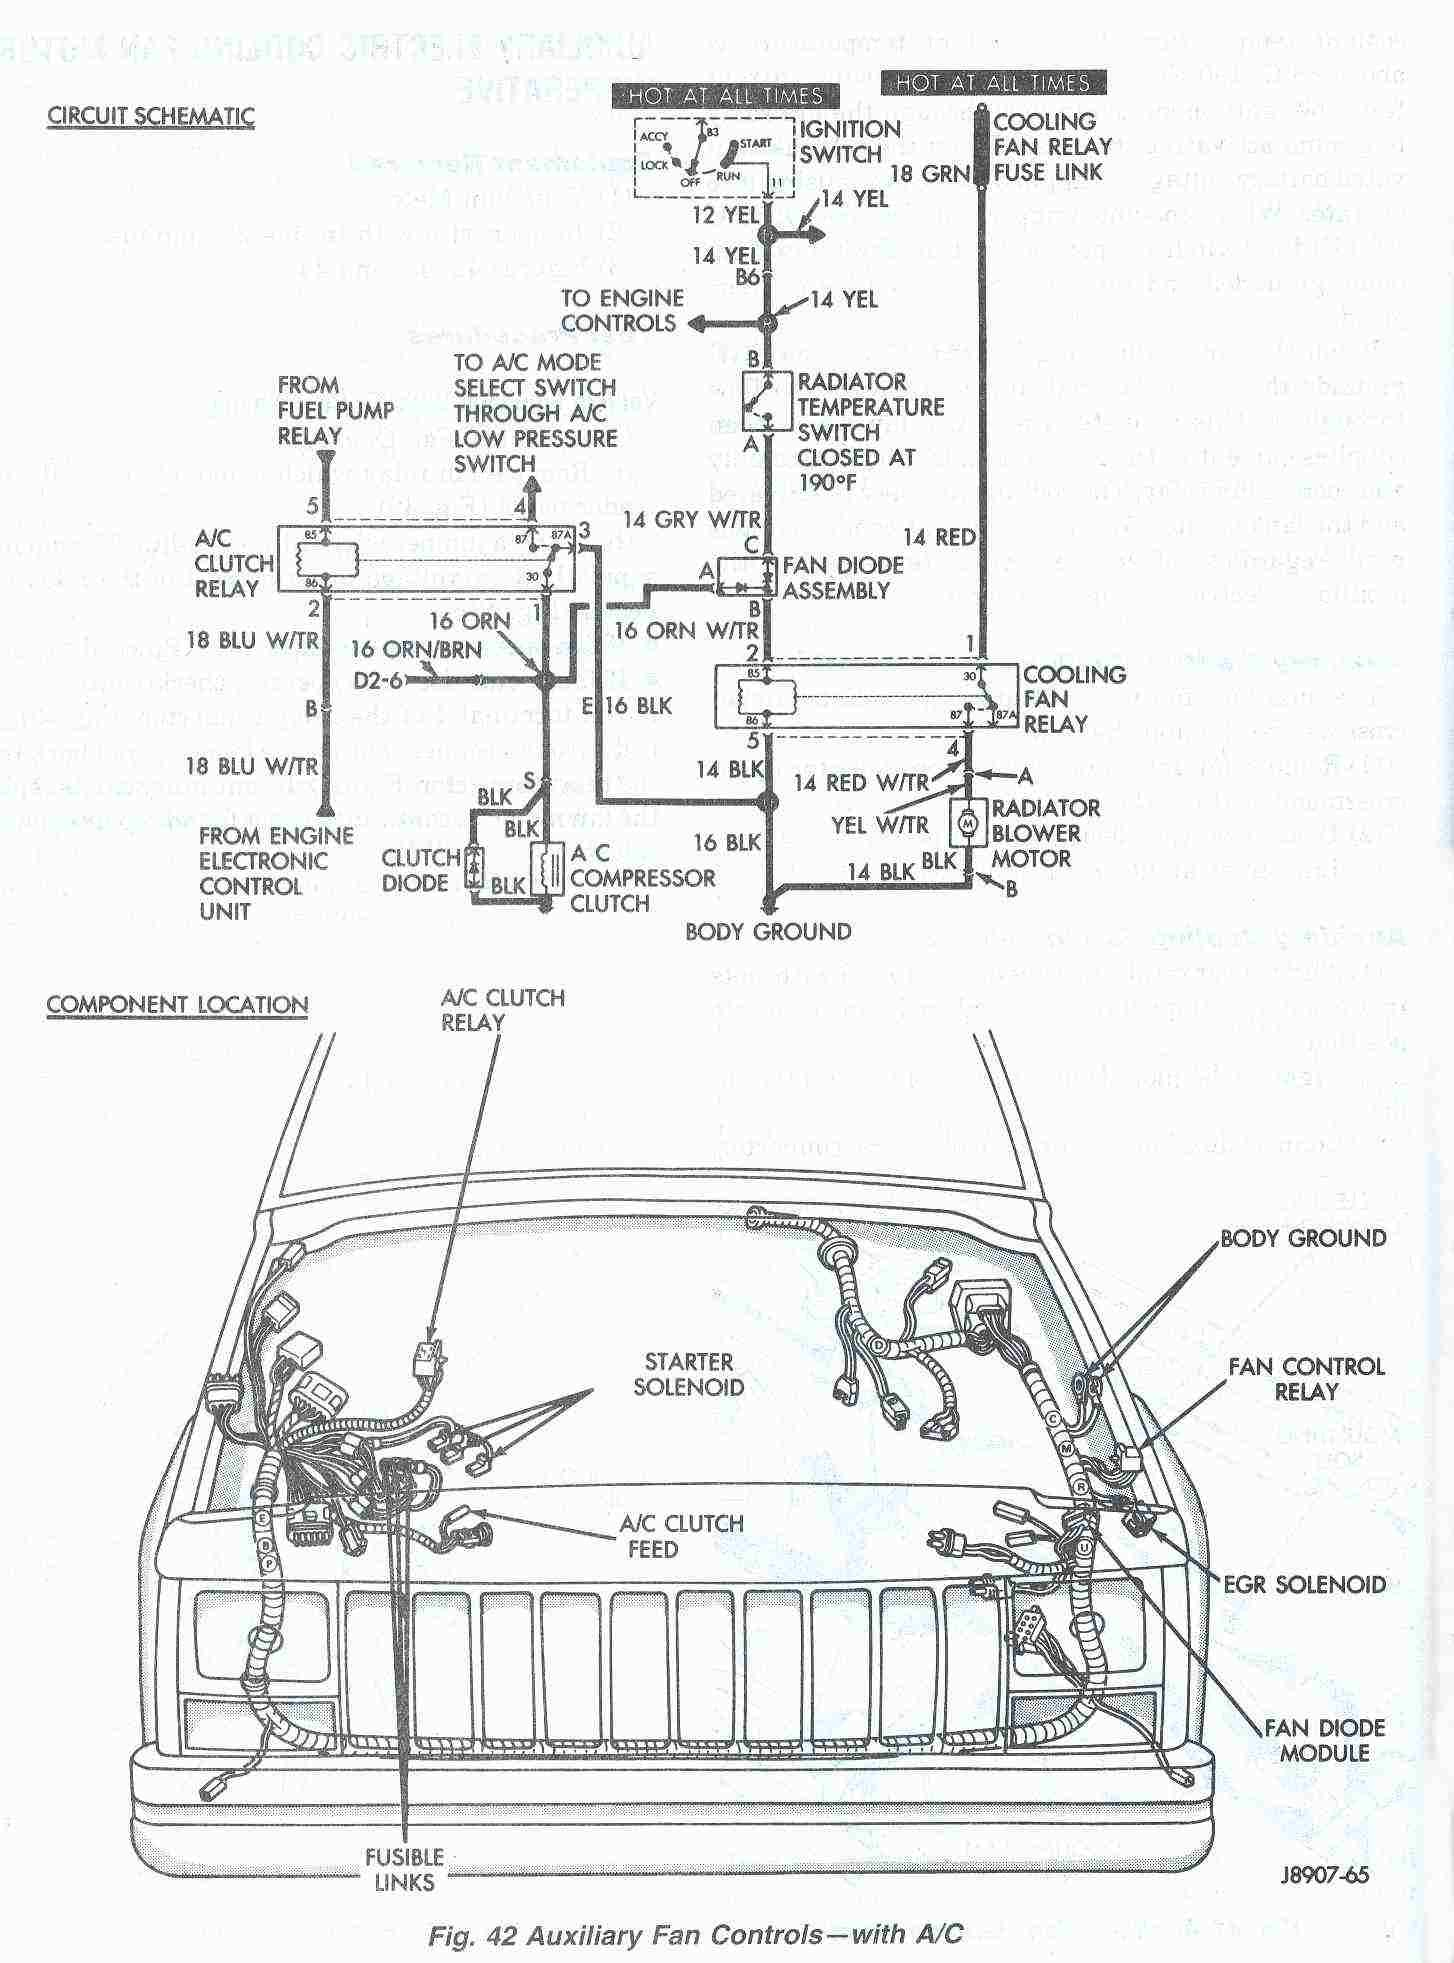 Jeep 4 0 Wiring Diagram Start Building A 1993 Wrangler Engine Liter My Rh Detoxicrecenze Com 40